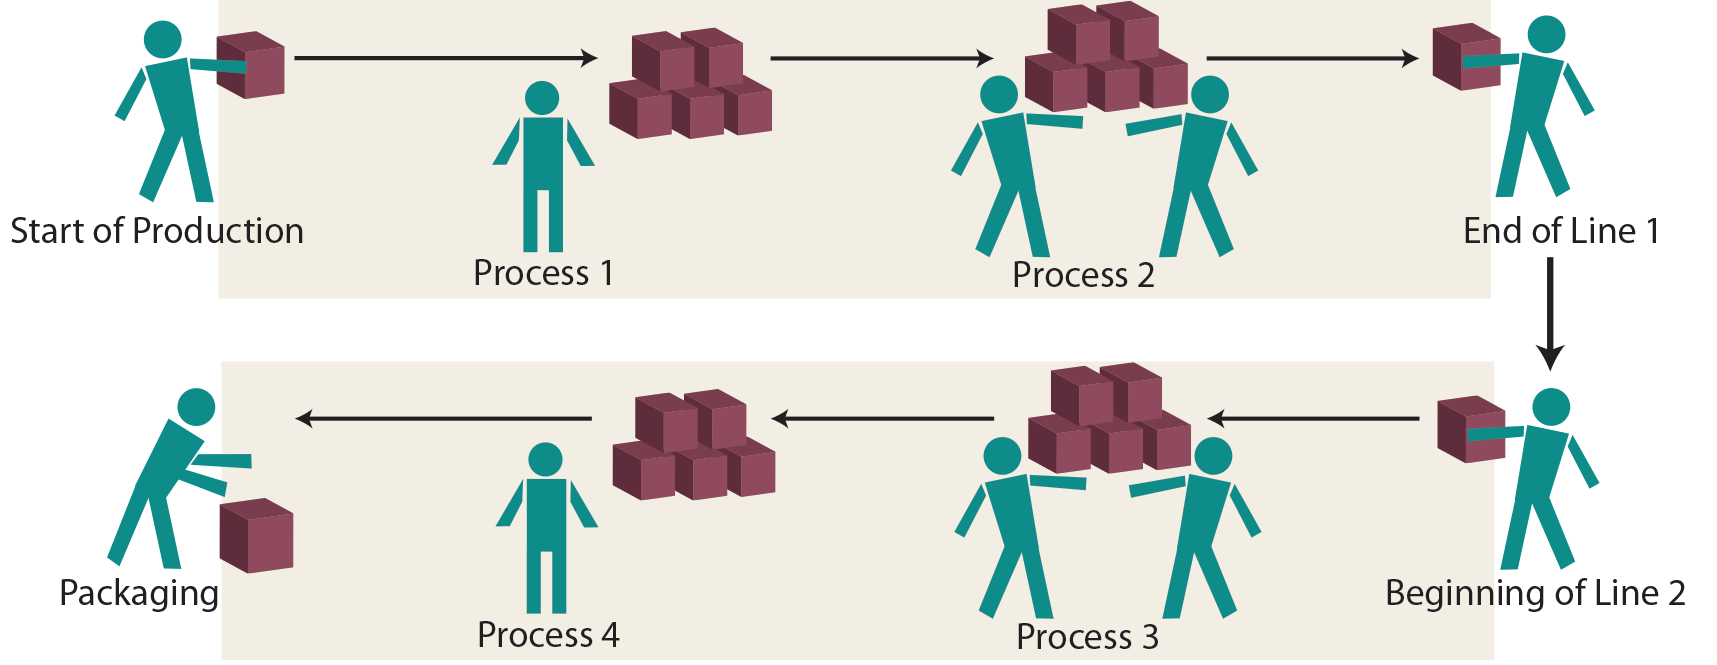 Quality Management Accounting - Kaizen Illustration